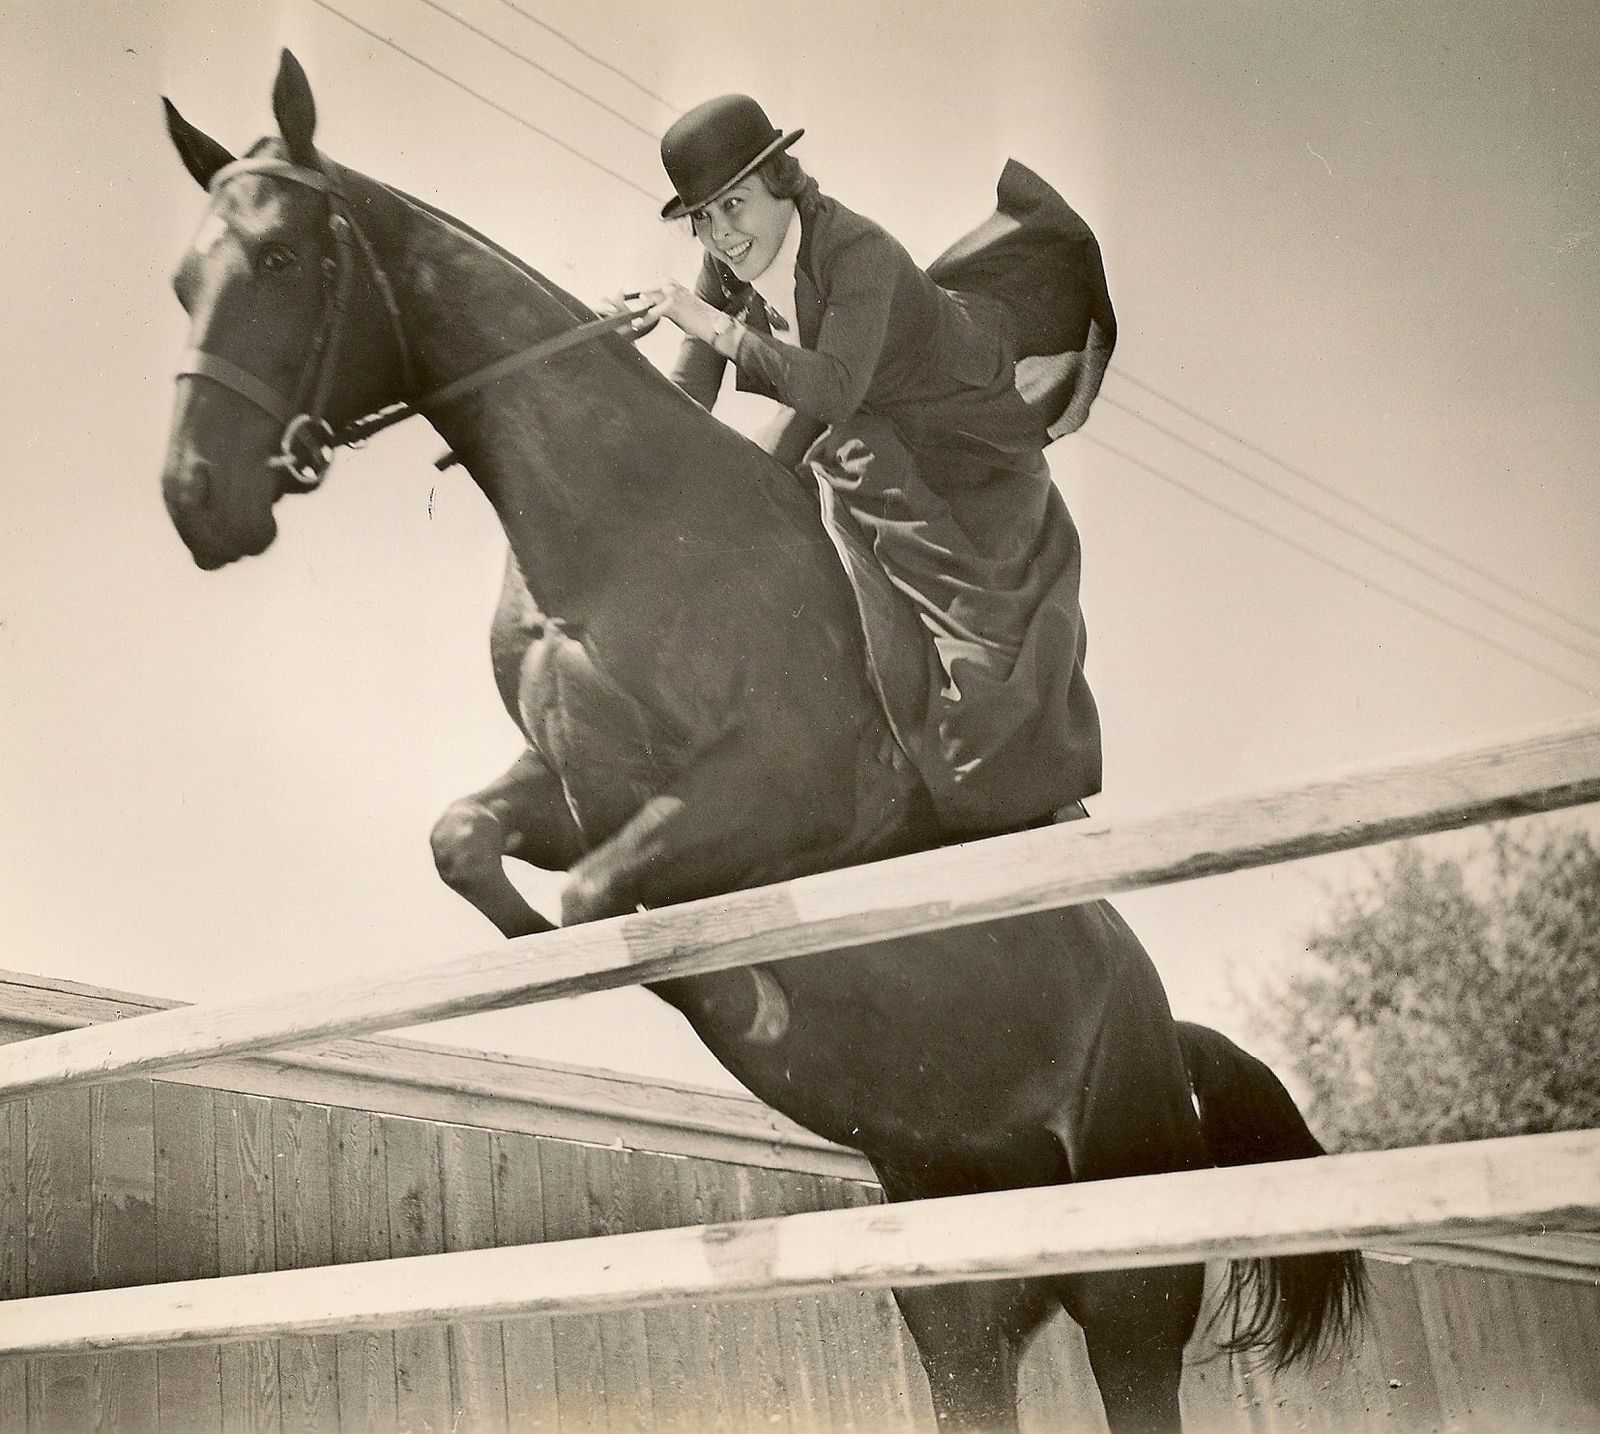 History(Story) of the horsemanship in rider and the saddle